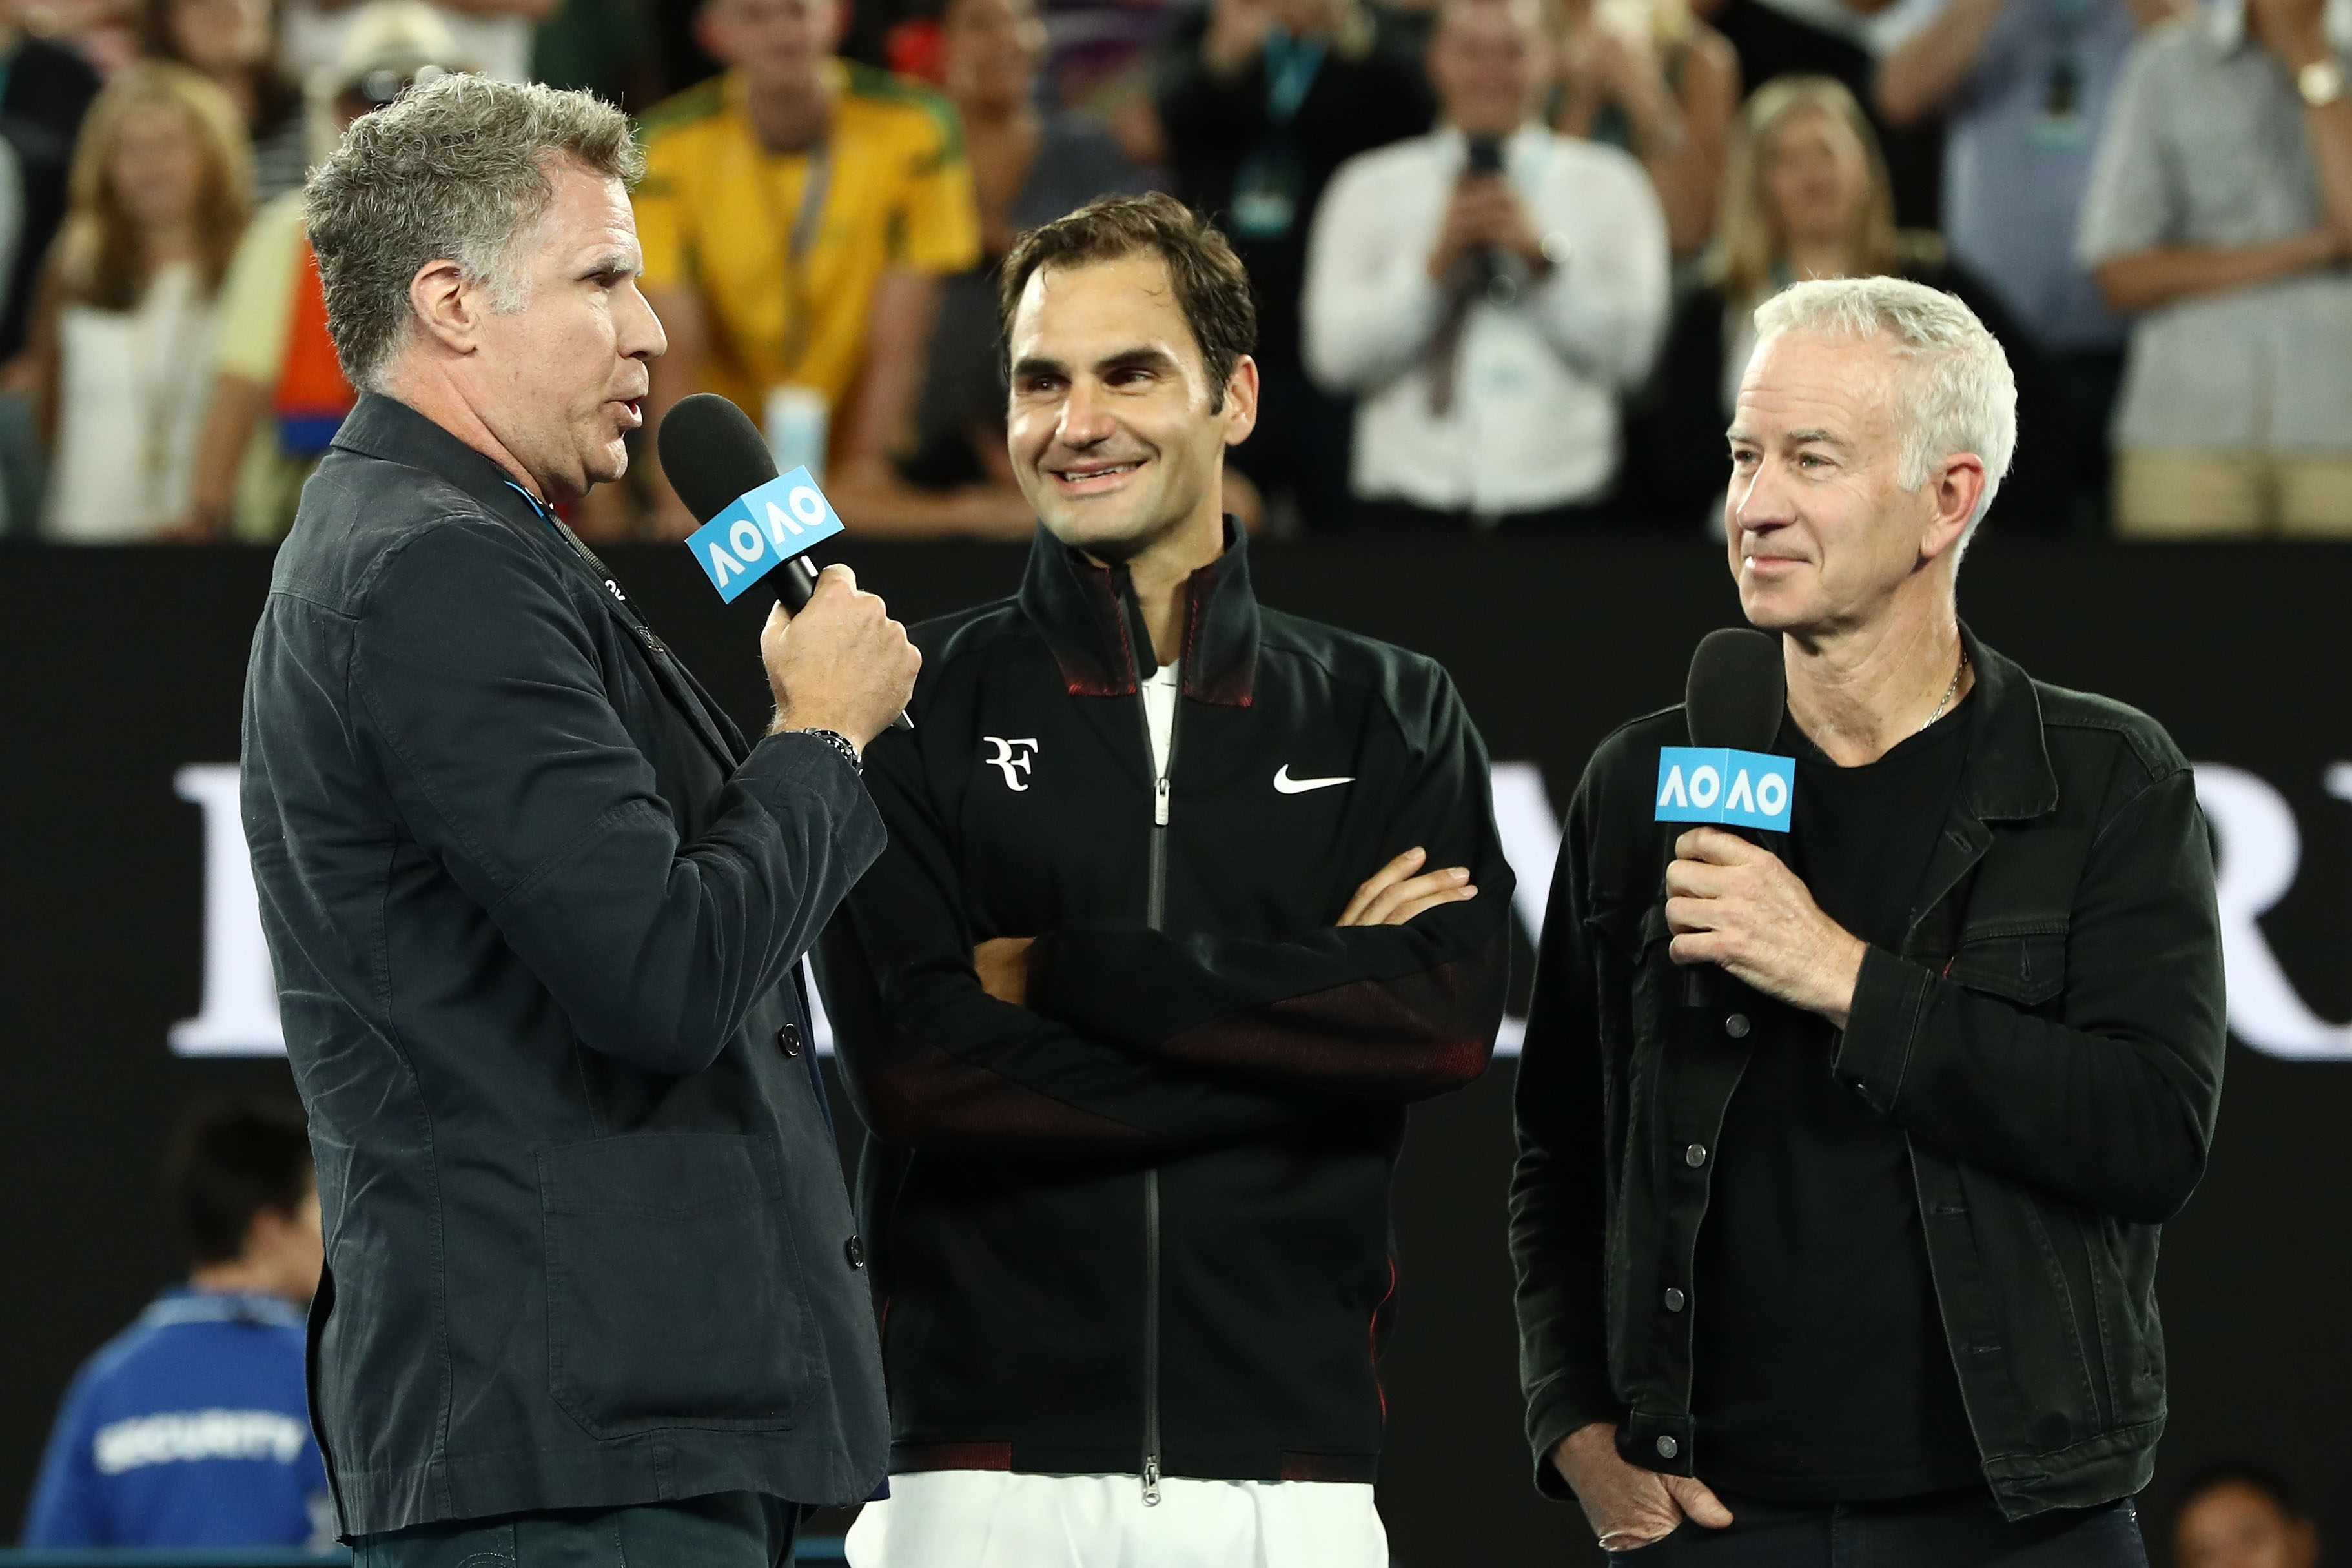 Will Ferrell, Roger Federer, John McEnroe at the Australian Open (Getty, EH)